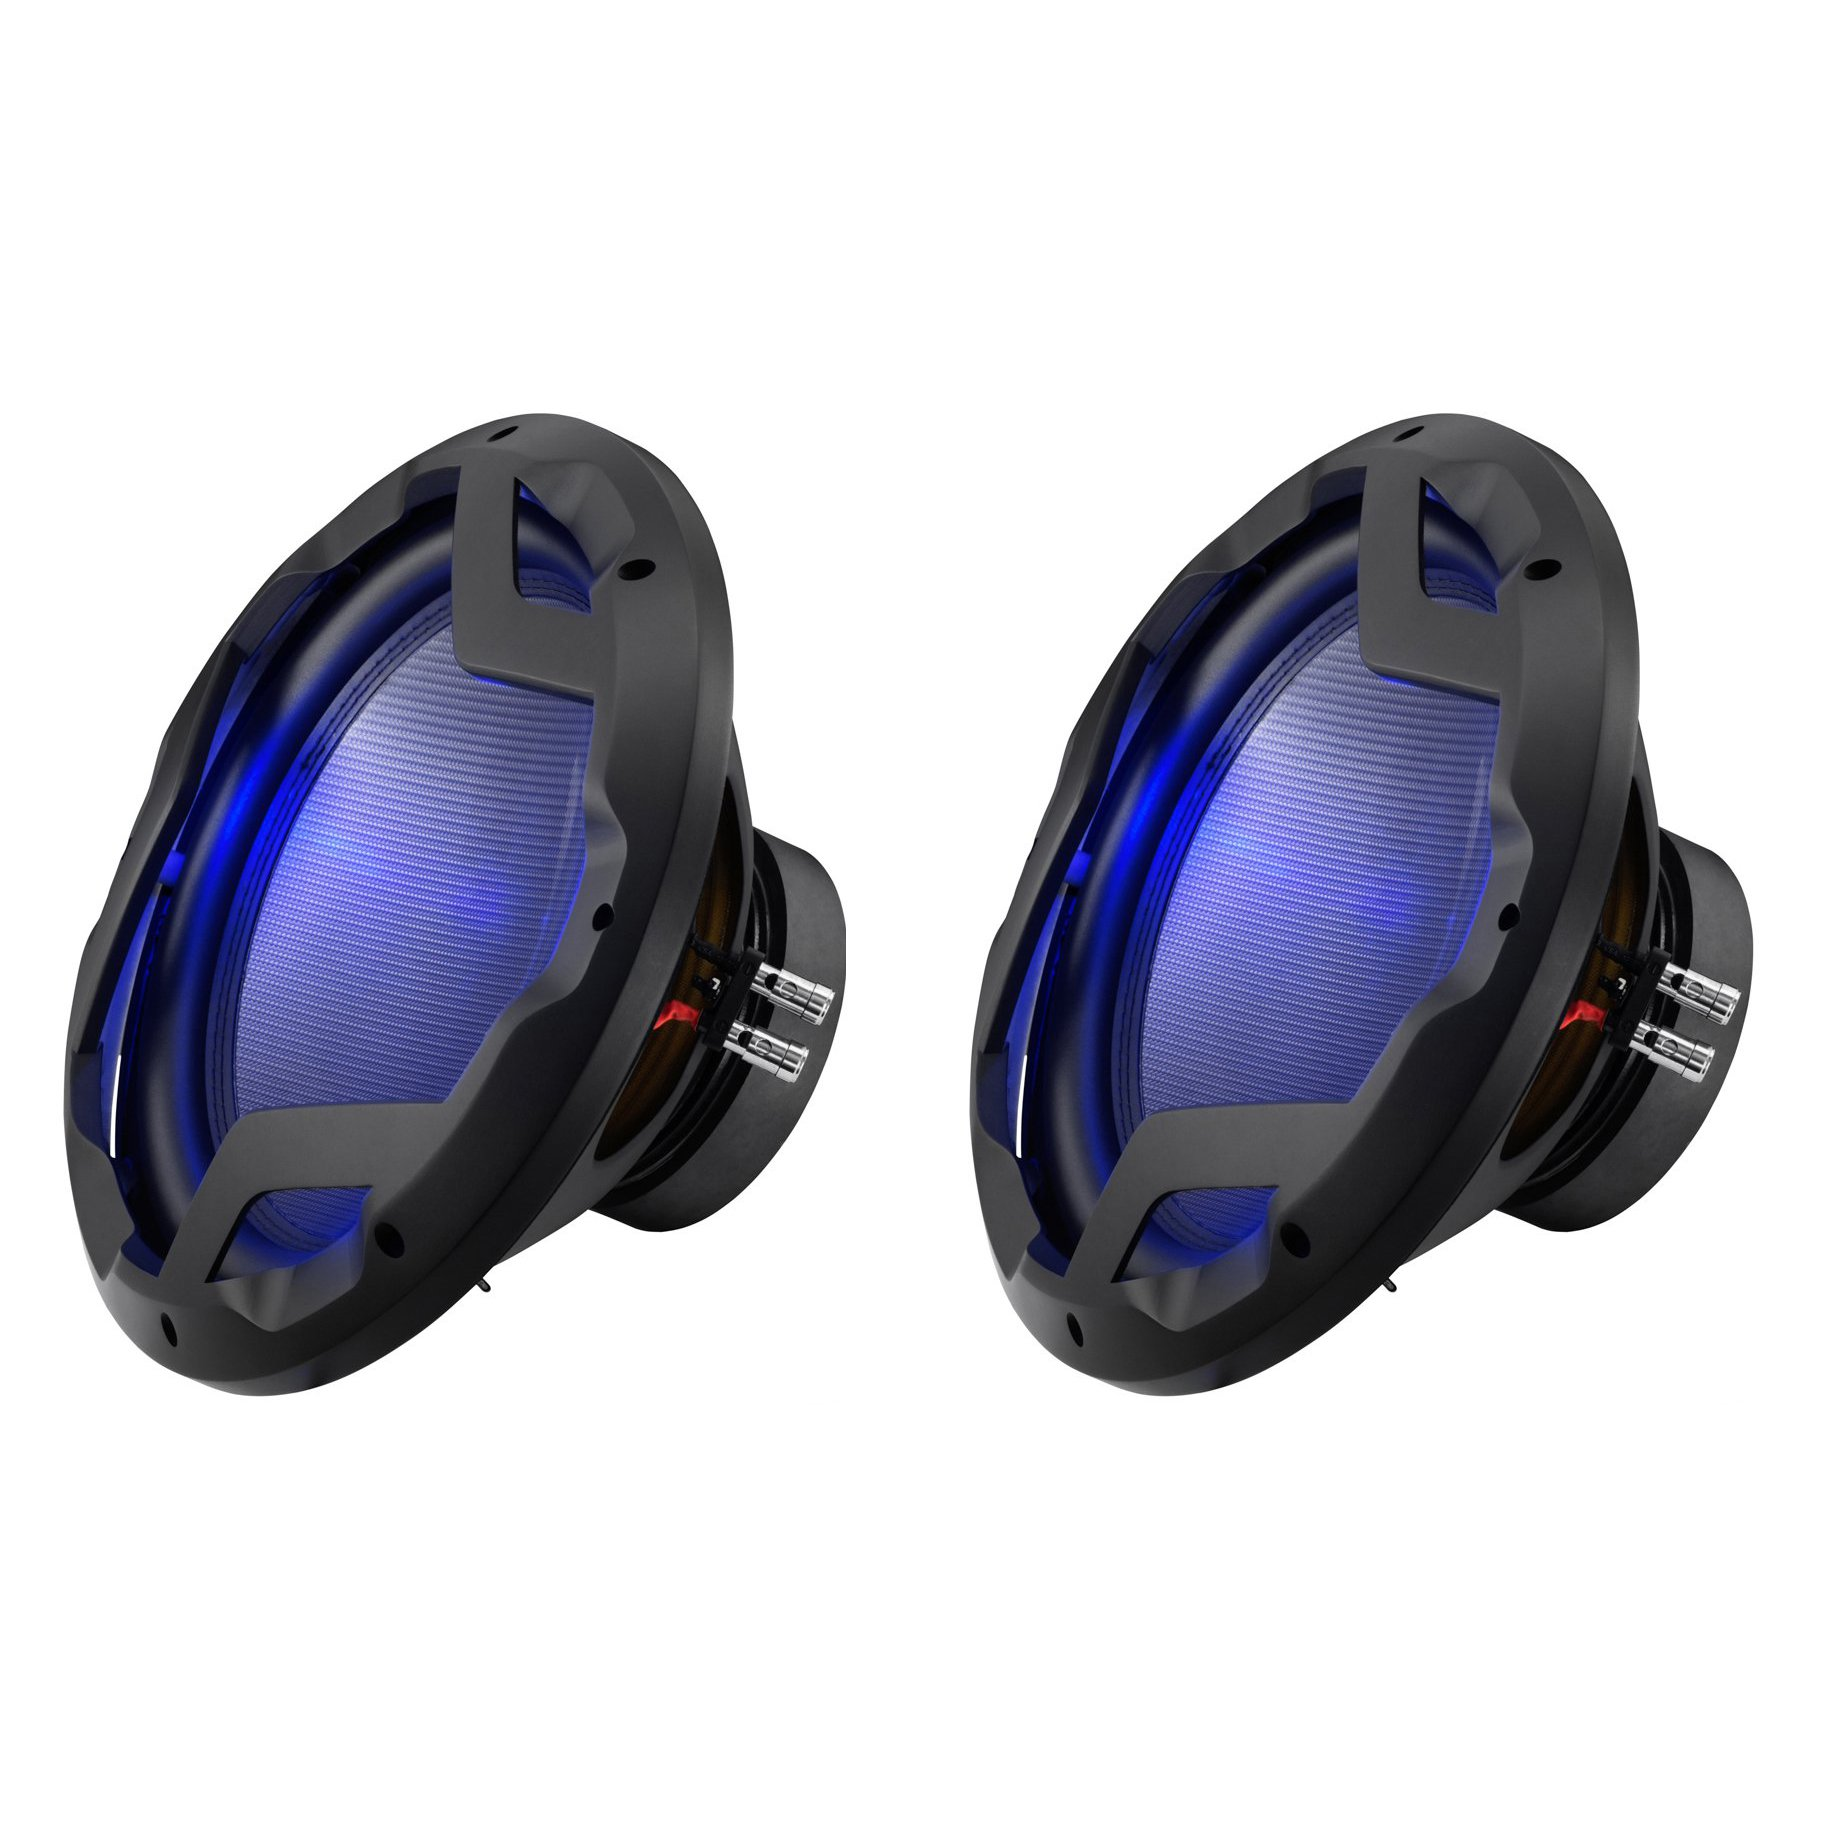 Boss Audio 12-Inch 1600-Watt Subwoofer with LED Illumination (2 Pack)